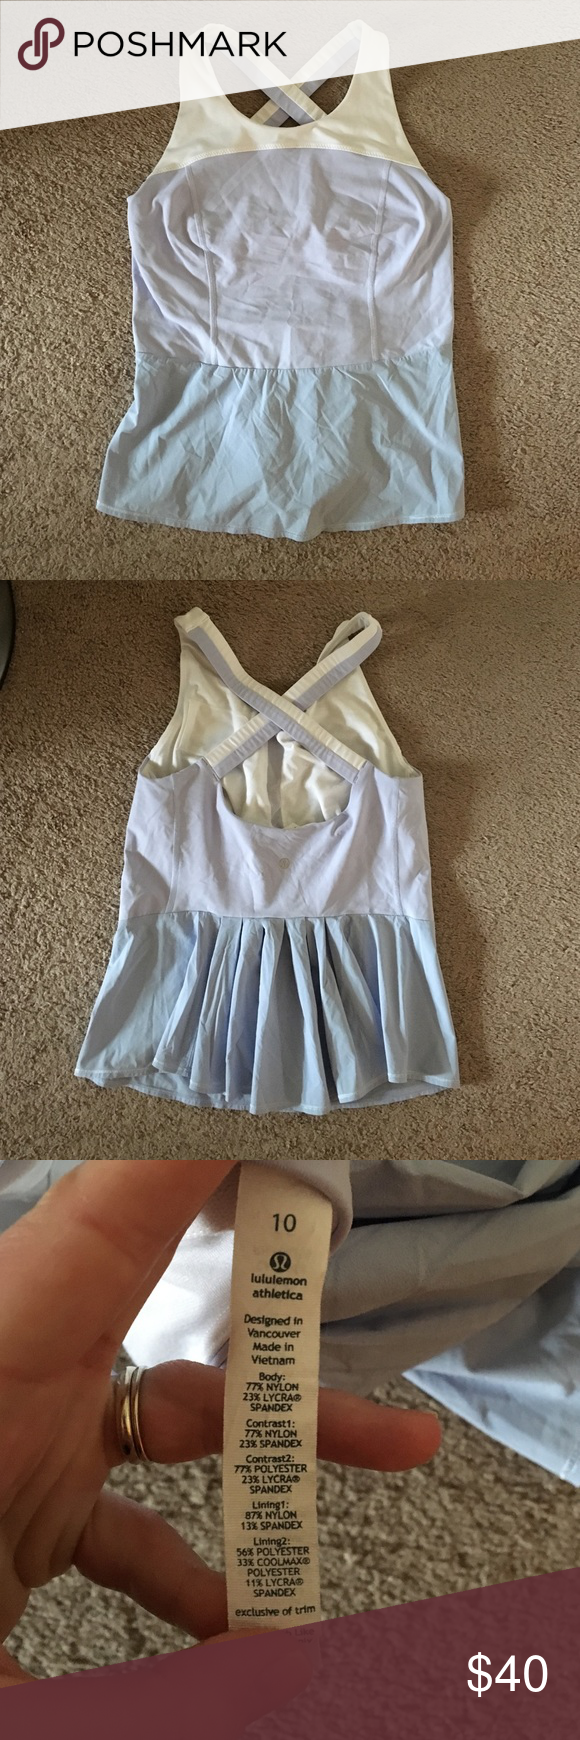 Lululemon cross back peplum tank Only worn a couple of times, adorable pleated back, crossback straps. Soft lilac and white, built in bra with small keyholder pocket lululemon athletica Tops